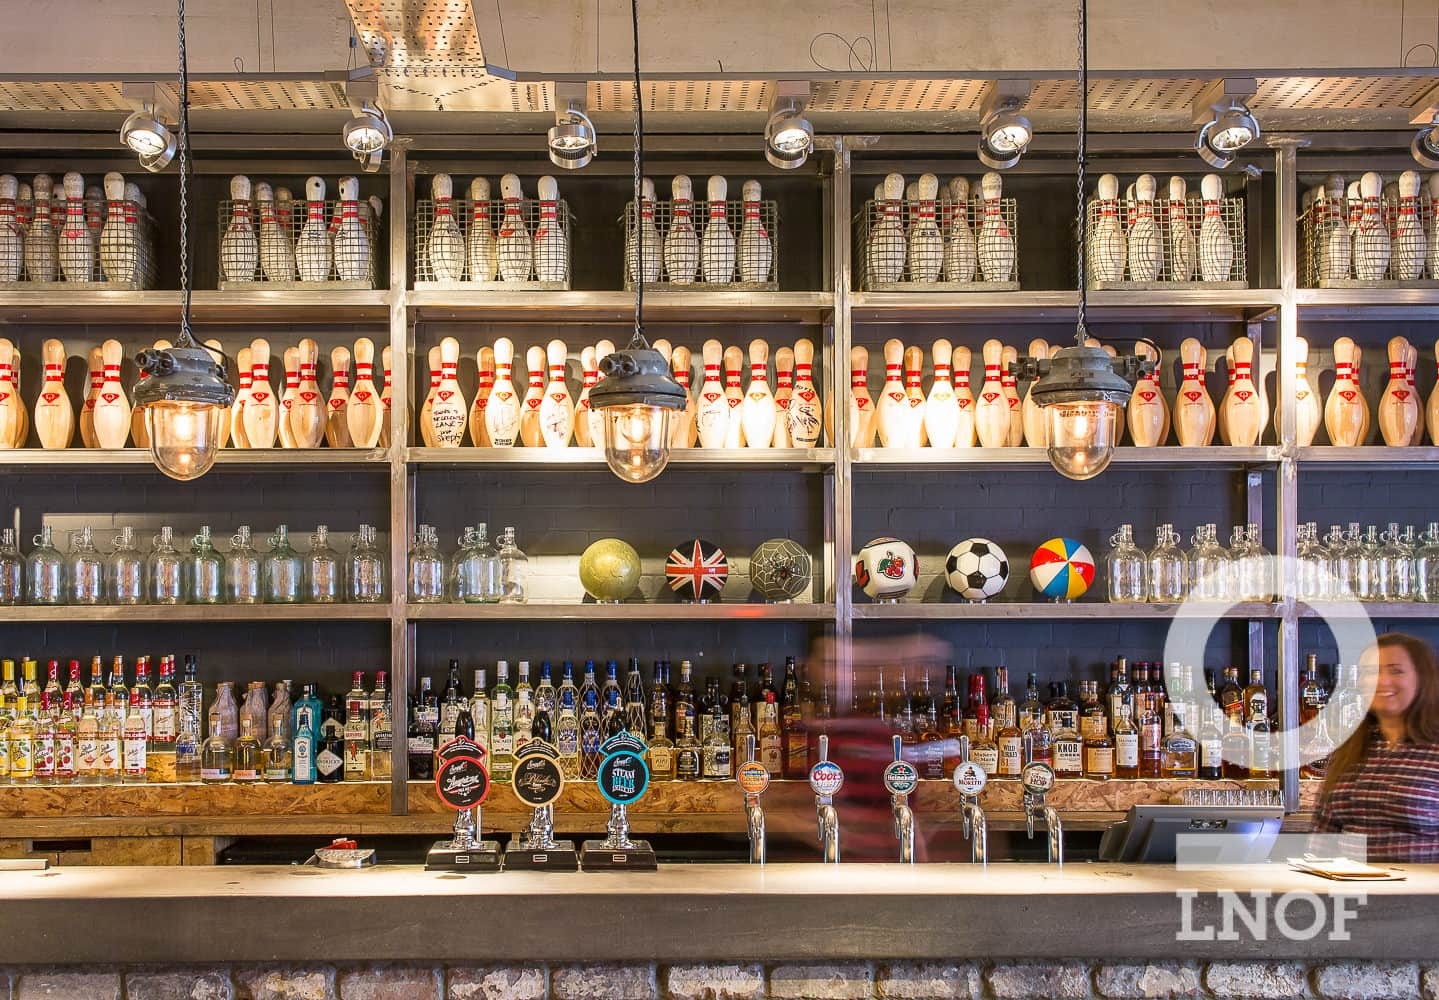 The bar in Lane7 with bowling pins and alcohol on the shelves